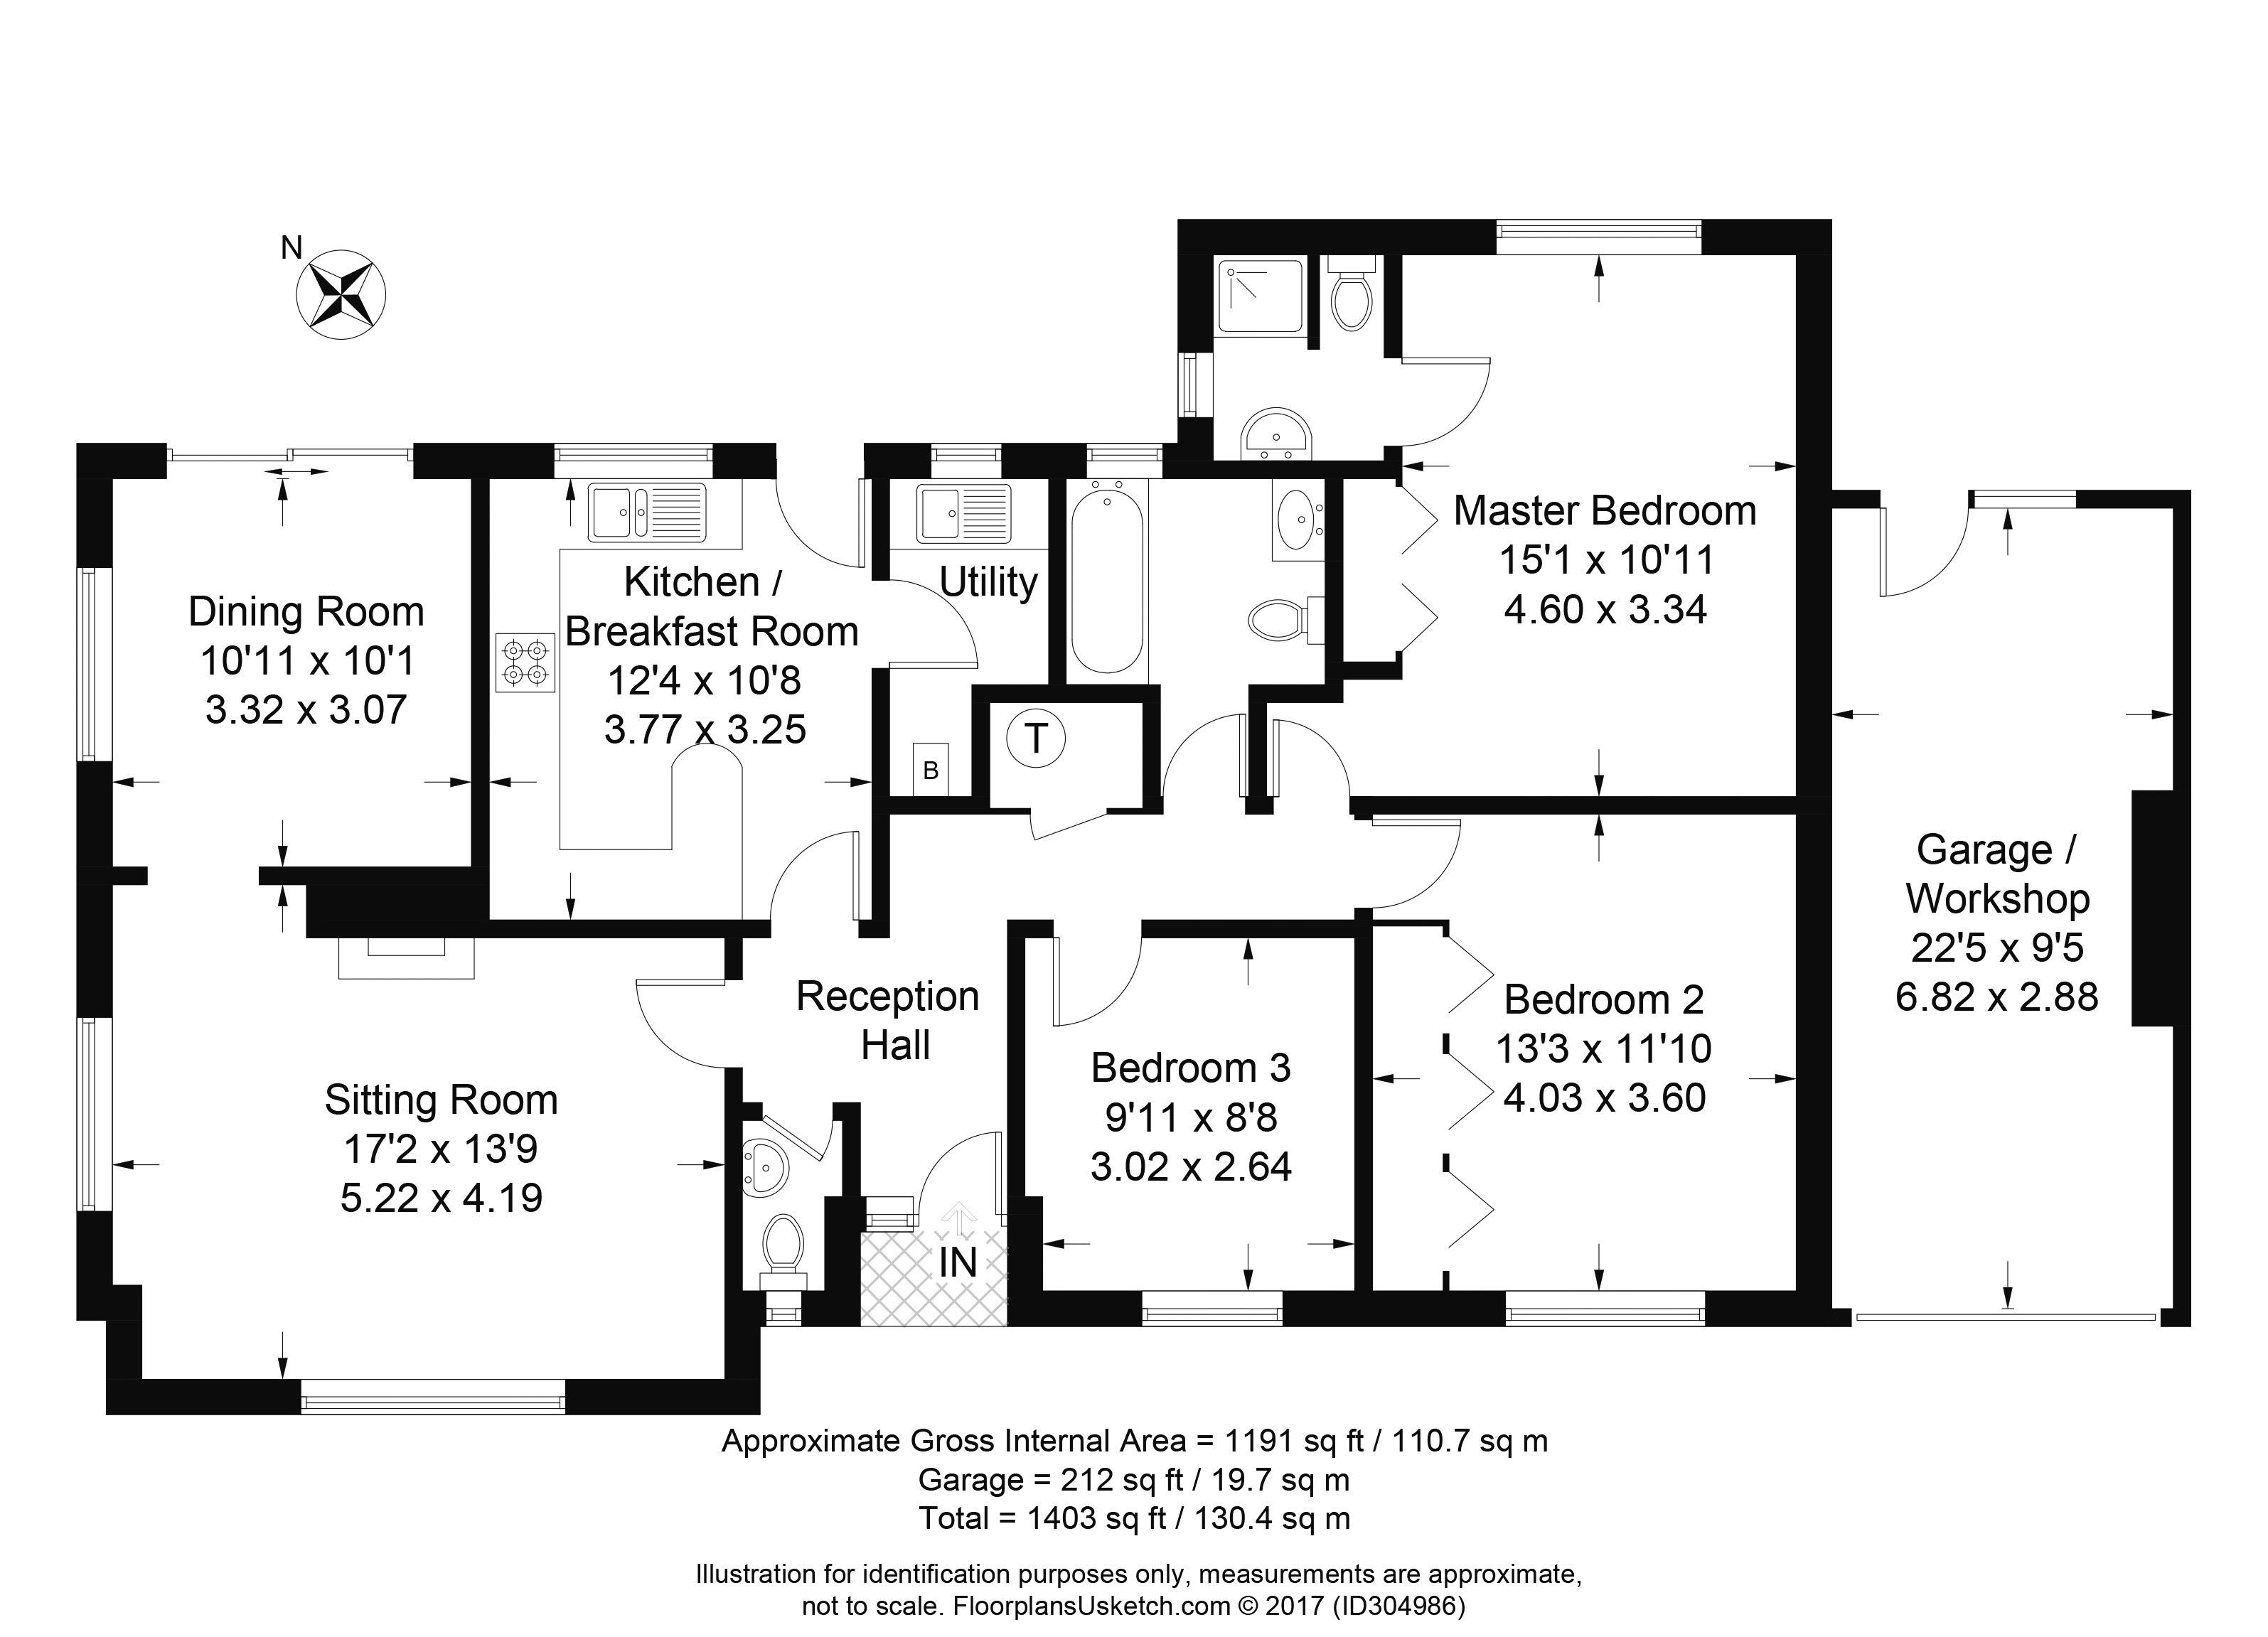 7987280 also 204 s salisbury st 4 bedroom floor plan also Design Logo Will Stand Out Industry Recall Be 650668 furthermore Construction Tools Pattern Vector 19481659 also 3775150. on property maintenance log